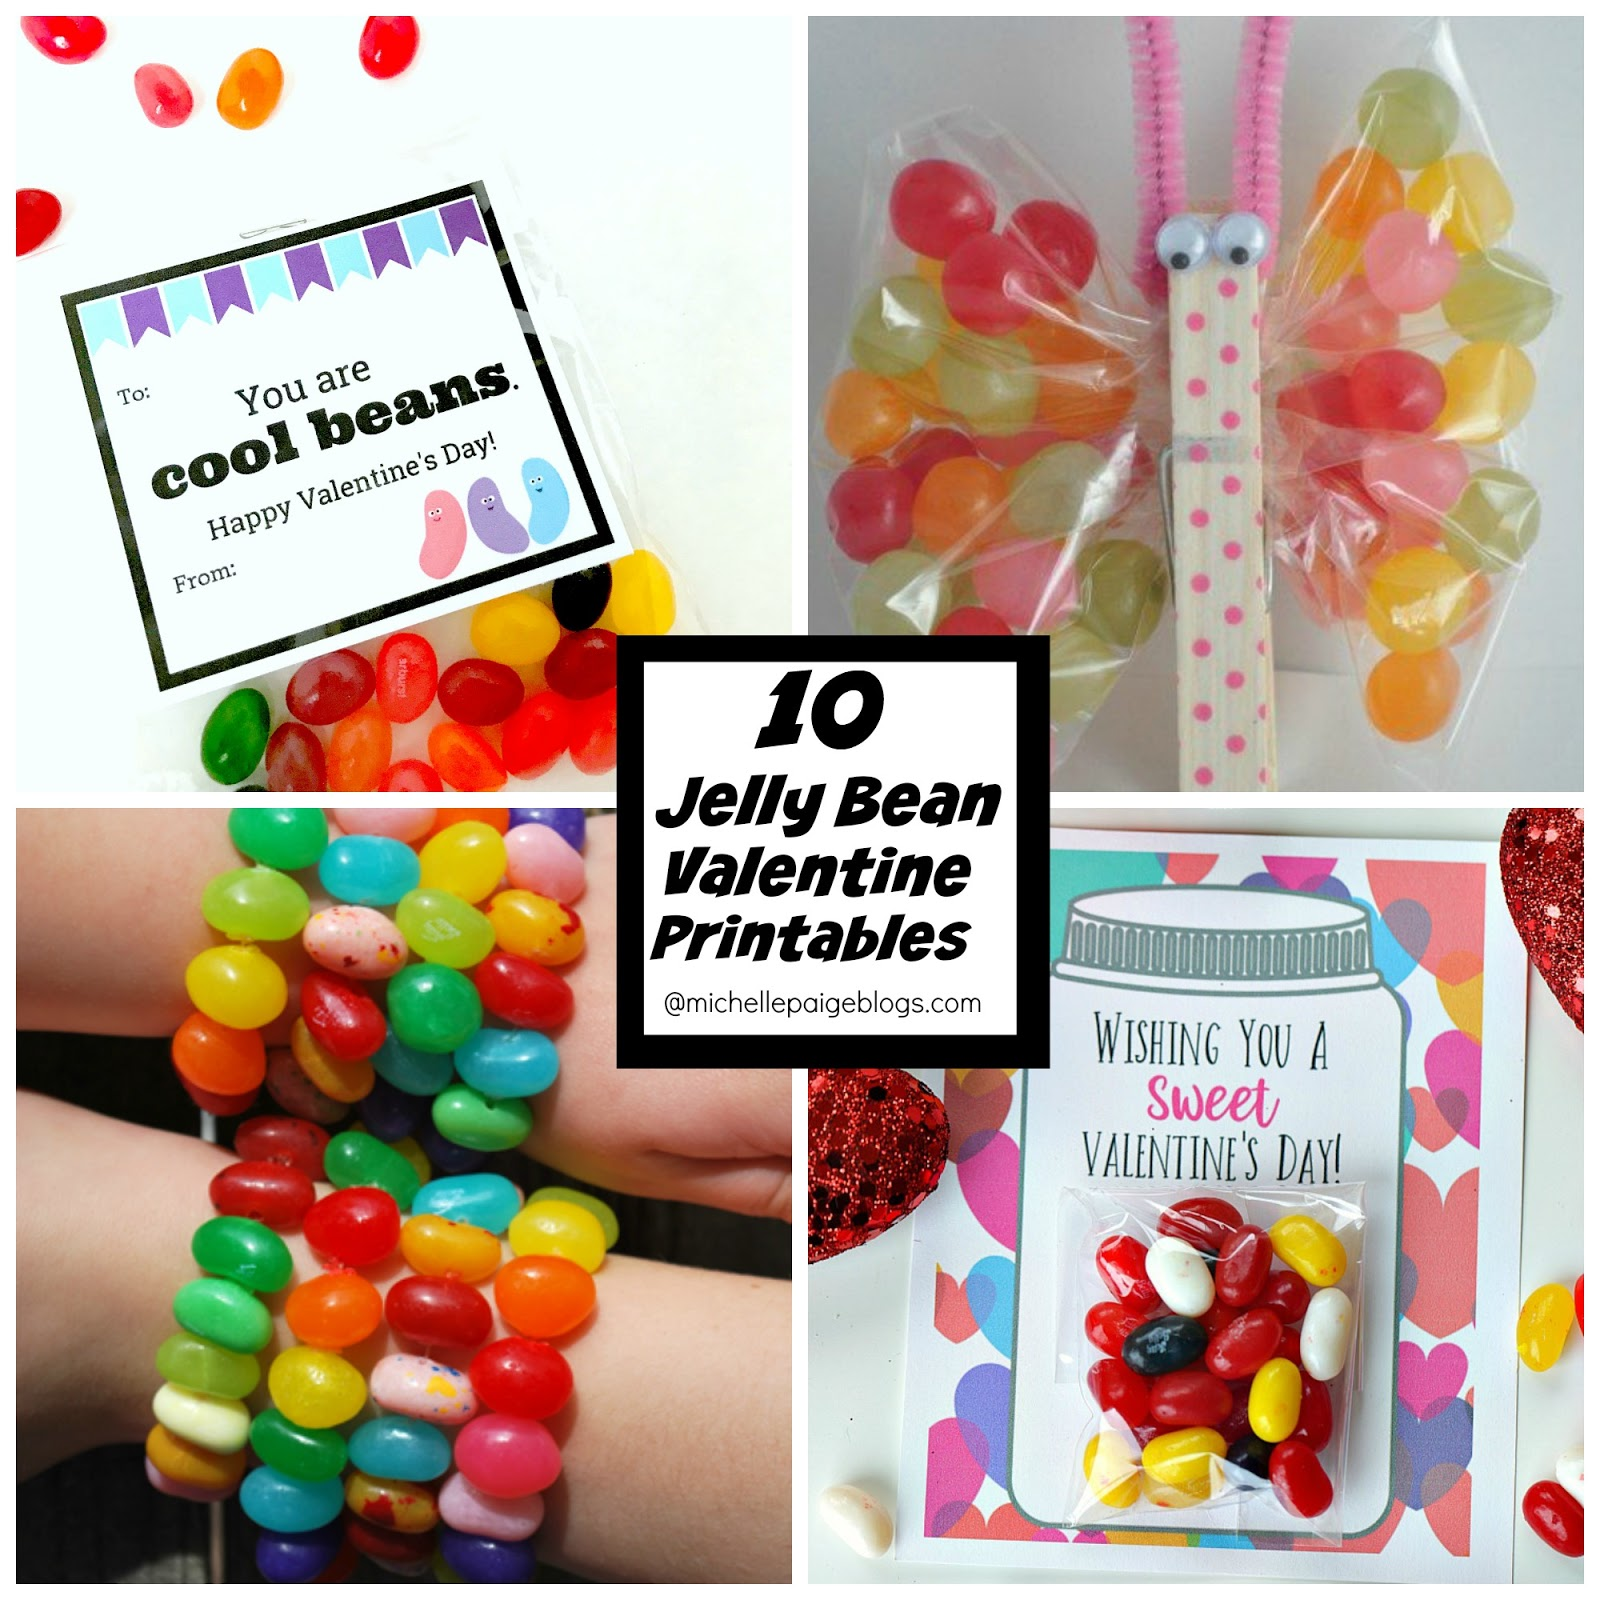 Michelle Paige Blogs 10 Jelly Bean Valentine Printables